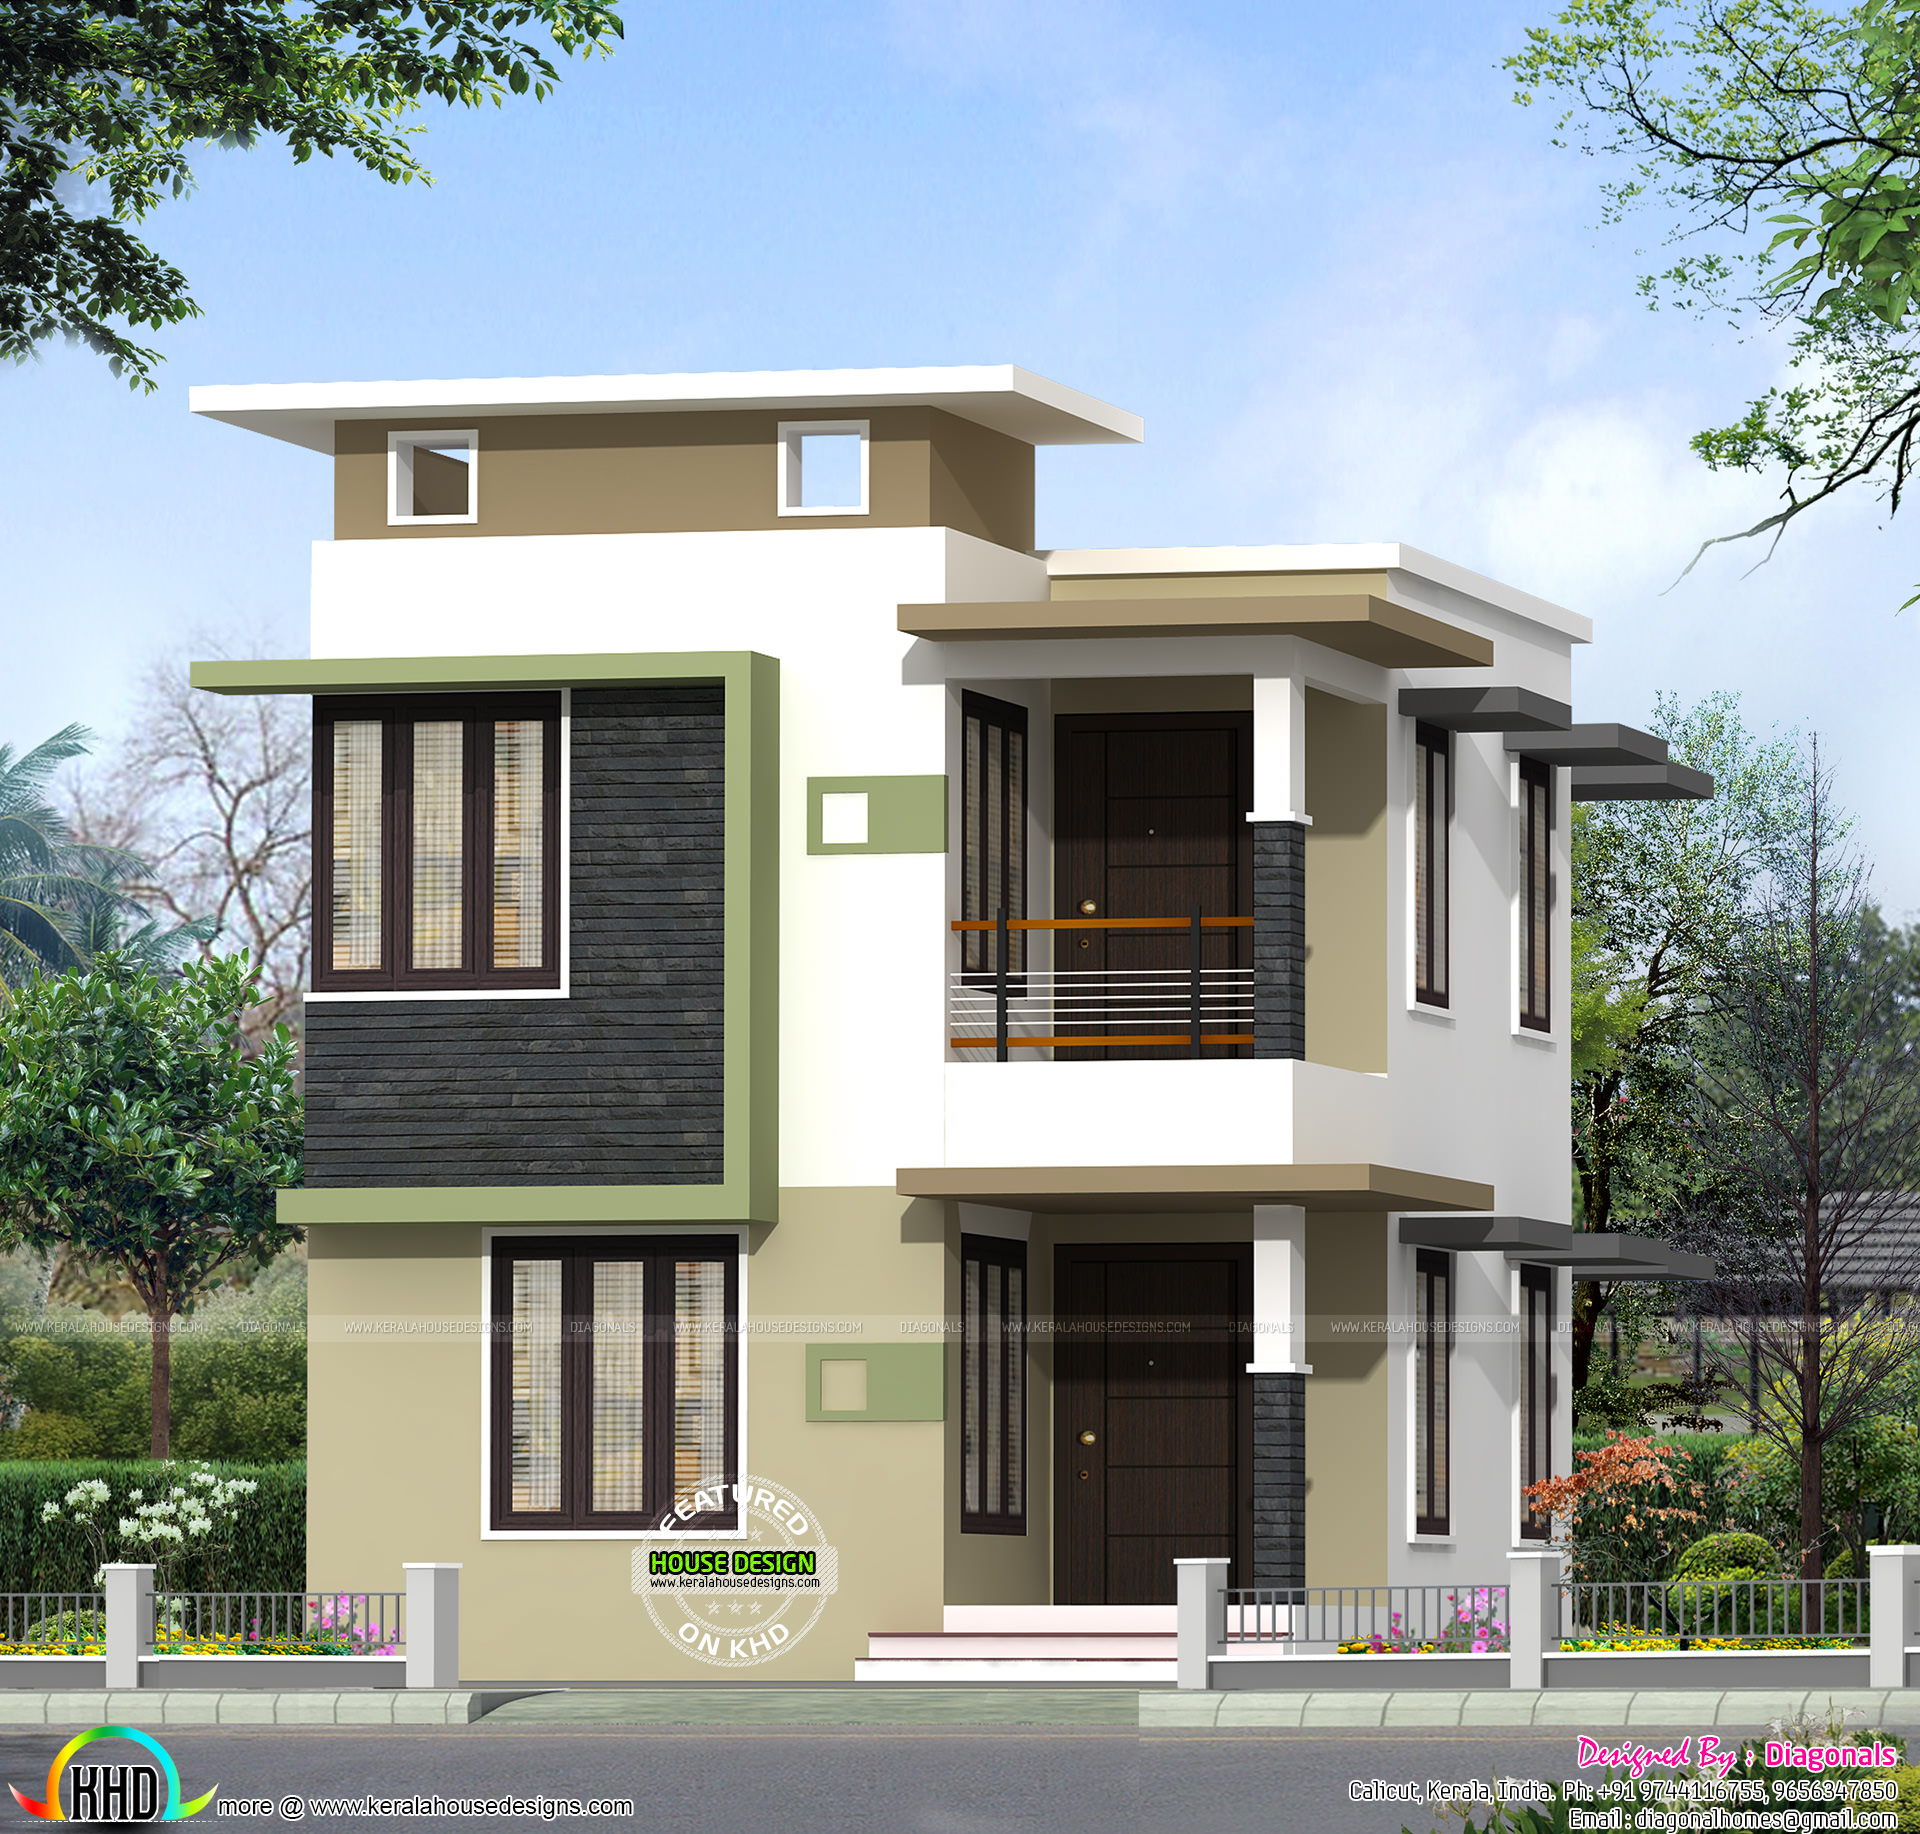 1631 Sq ft Budget Flat Roof Home Kerala Design And